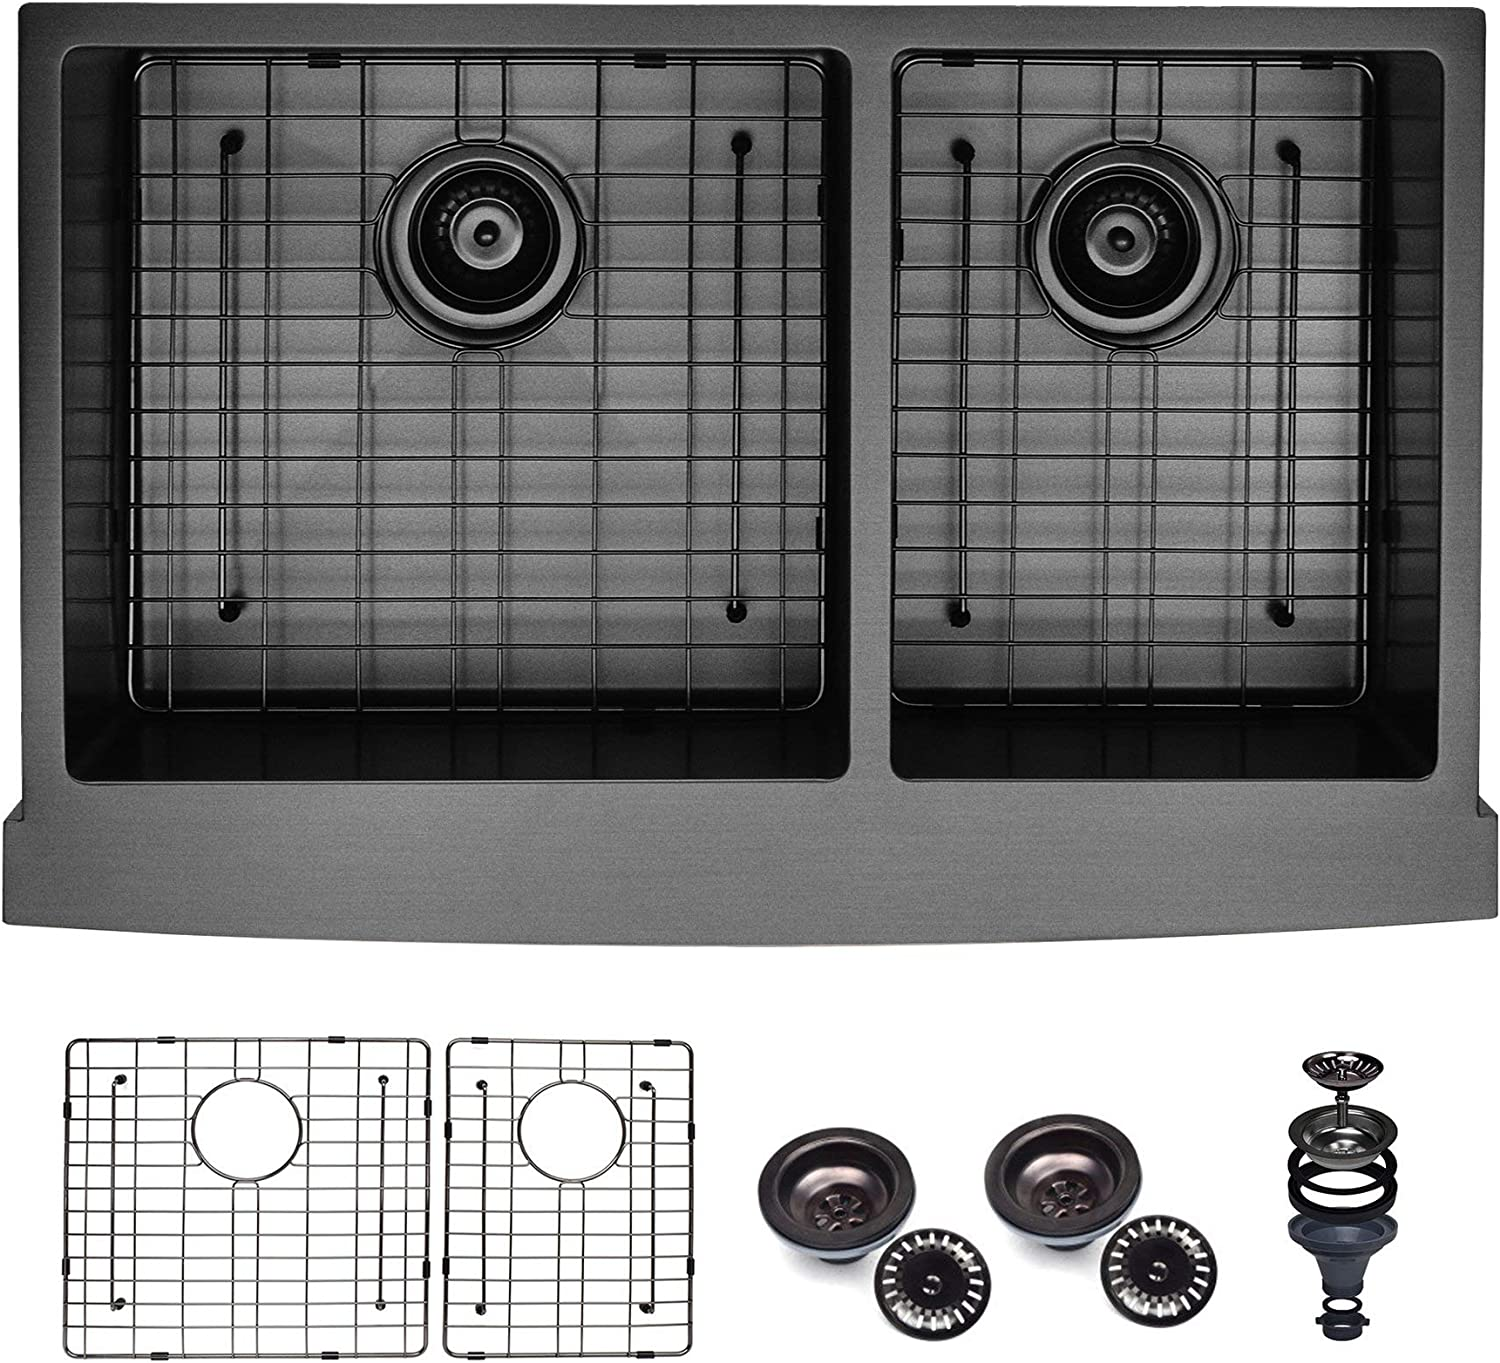 Koozzo 33 Gunmetal Black Nano Farmhouse Apron Front Kitchen Sink For Luxury Kitchen 60 40 Double Bowl Grid And Drain Enclosed Amazon Com